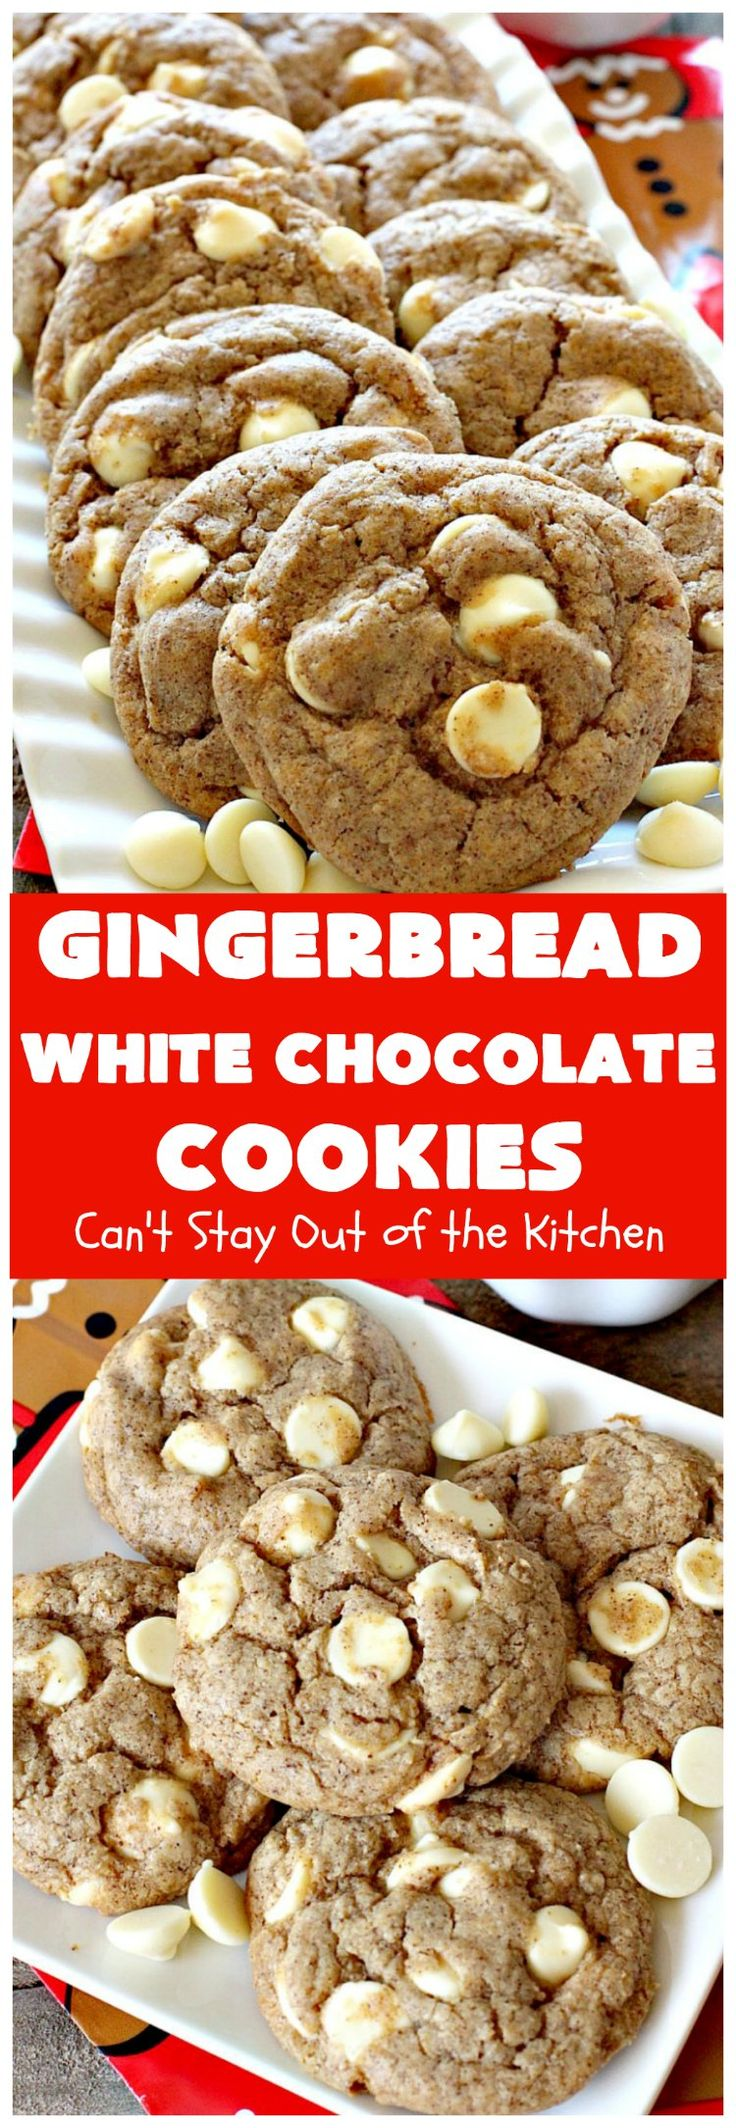 Gingerbread White Chocolate Cookies | This incredibly easy 5-ingredient cookie recipe is heavenly. It's terrific for holiday baking, Christmas cookie exchanges & office parties.